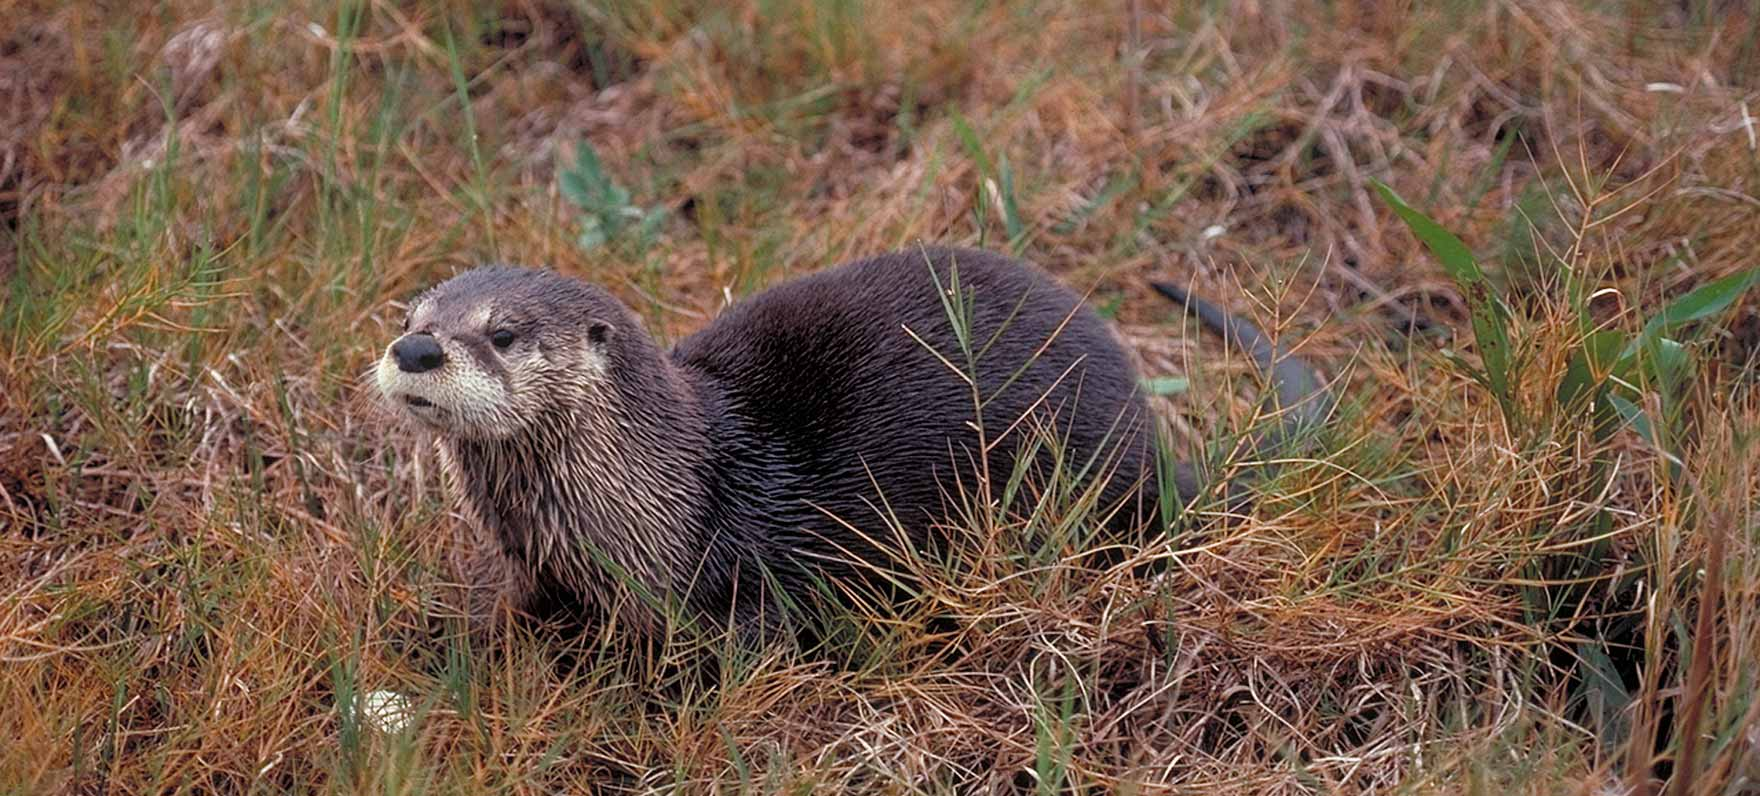 Texas River Otter